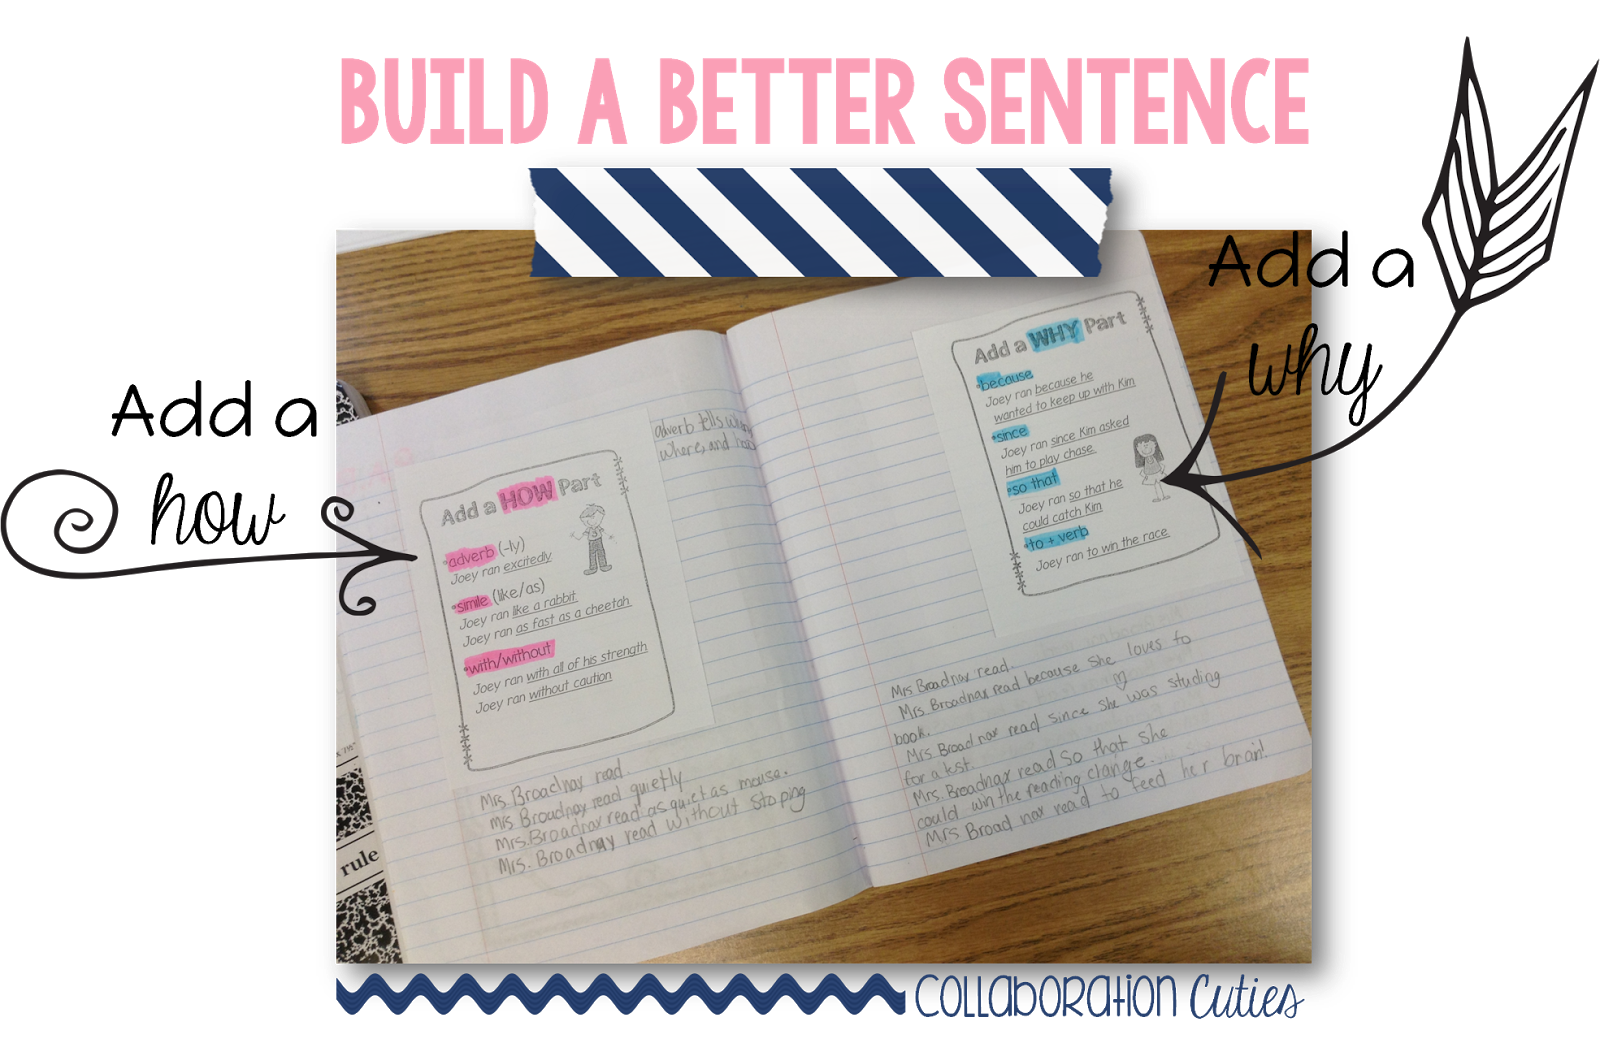 How To Build A Better Sentence The Best Way To Start The